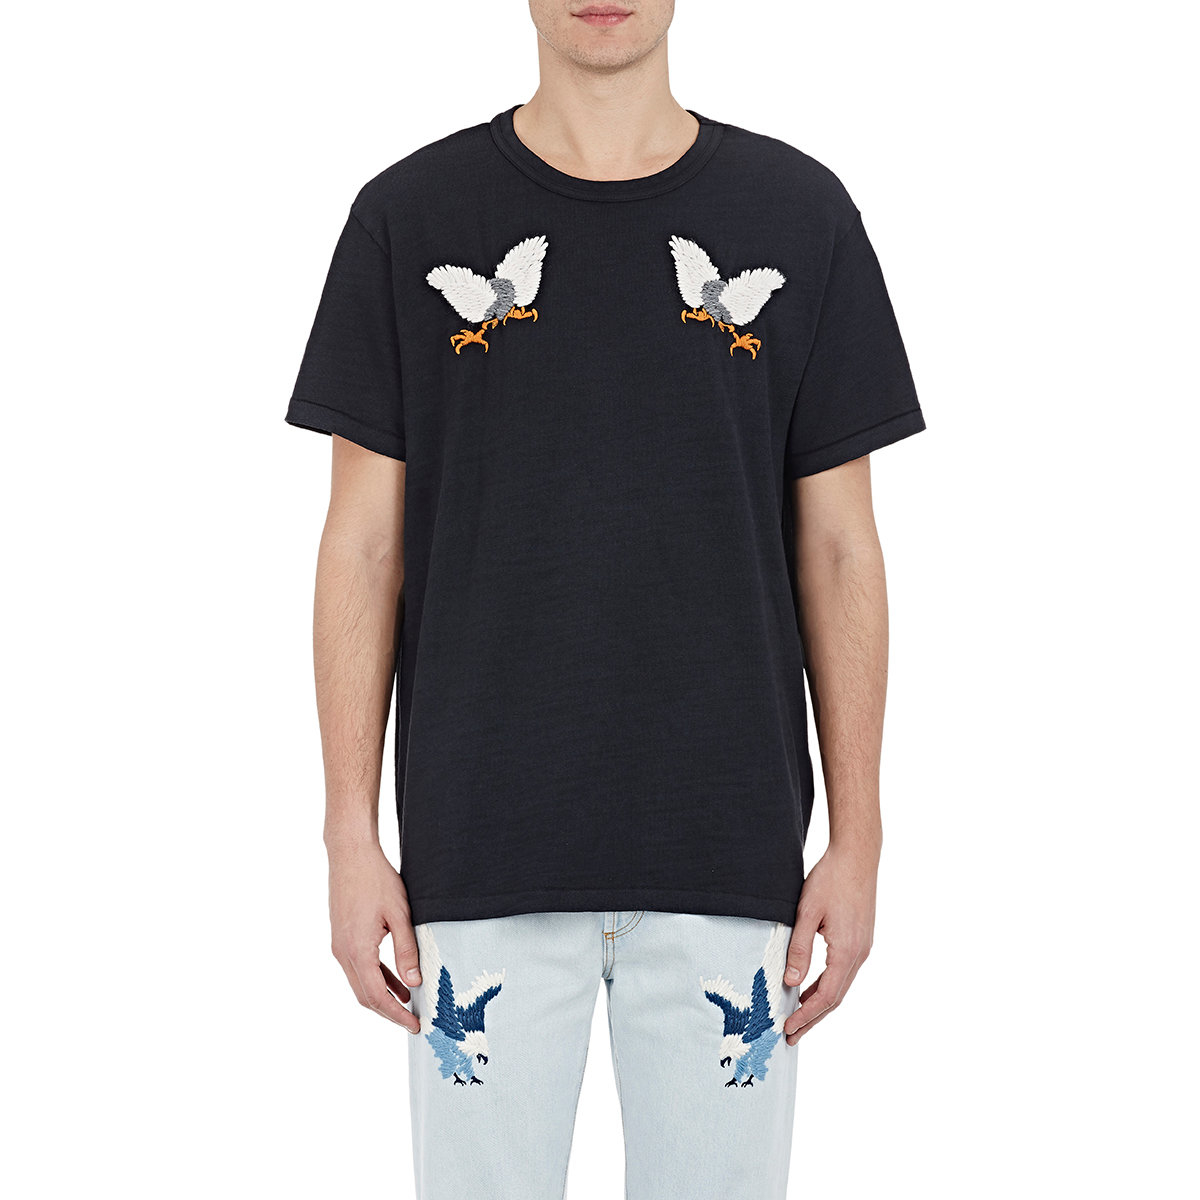 lyst off white c o virgil abloh men 39 s eagle embroidered t shirt in black for men. Black Bedroom Furniture Sets. Home Design Ideas